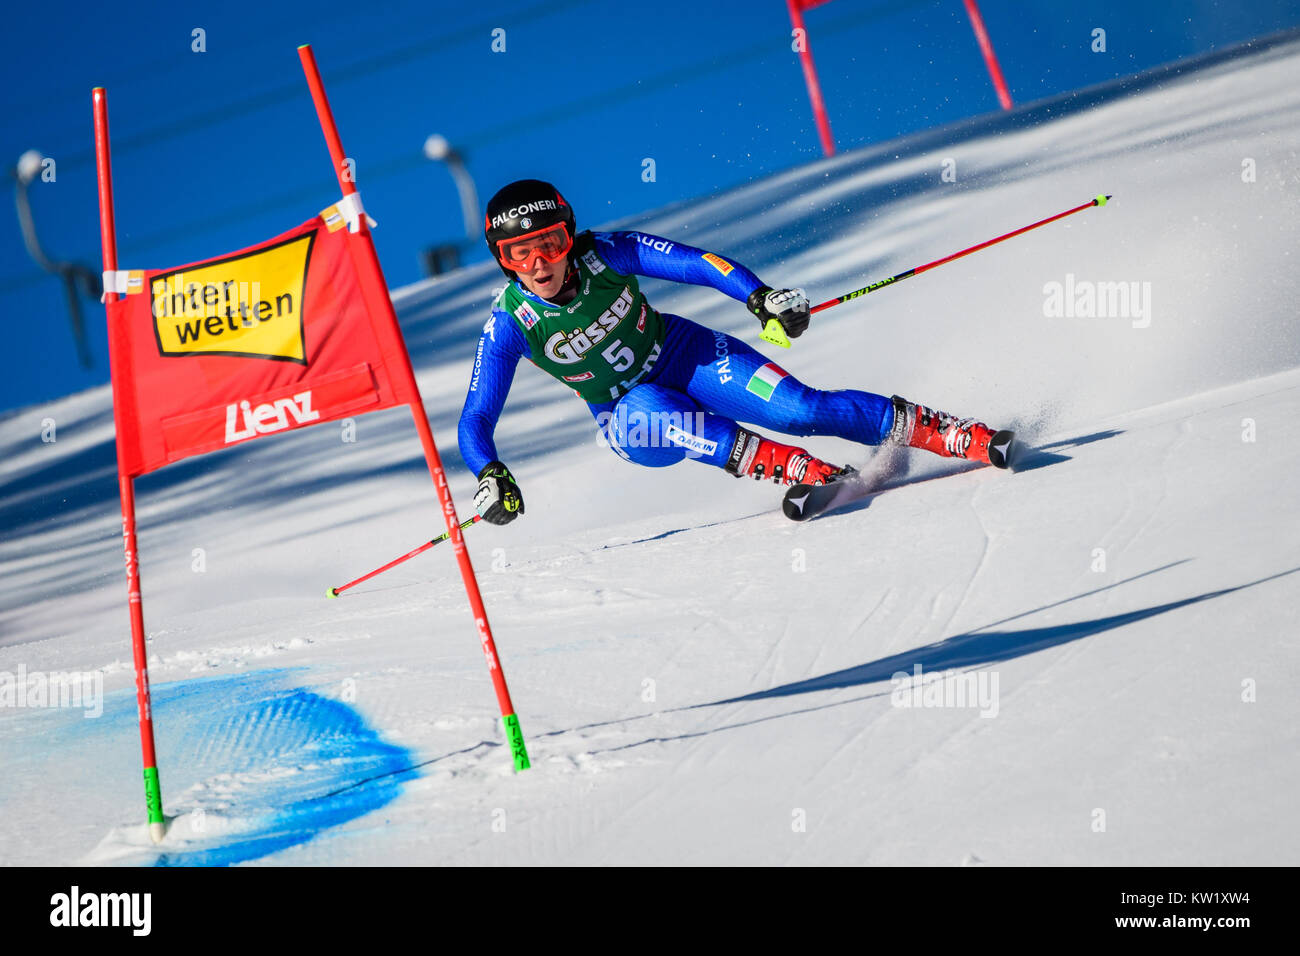 Lienz, Austria. 29th Dec, 2017. Sofia Goggia of Italy competes during the FIS World Cup Ladies Giant Slalom race - Stock Image